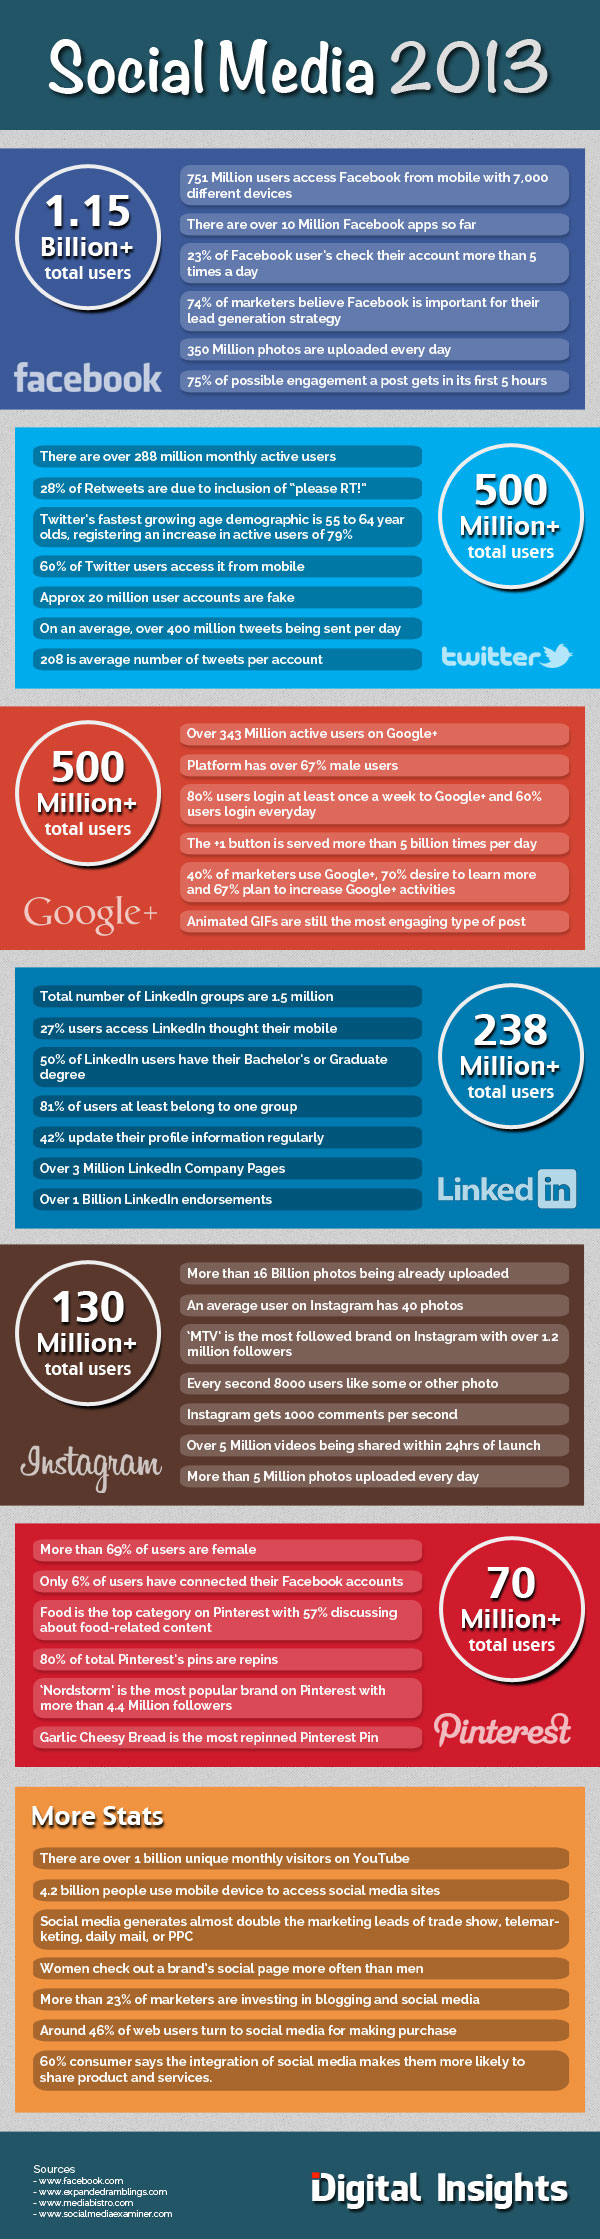 social media stats 2013 infographic